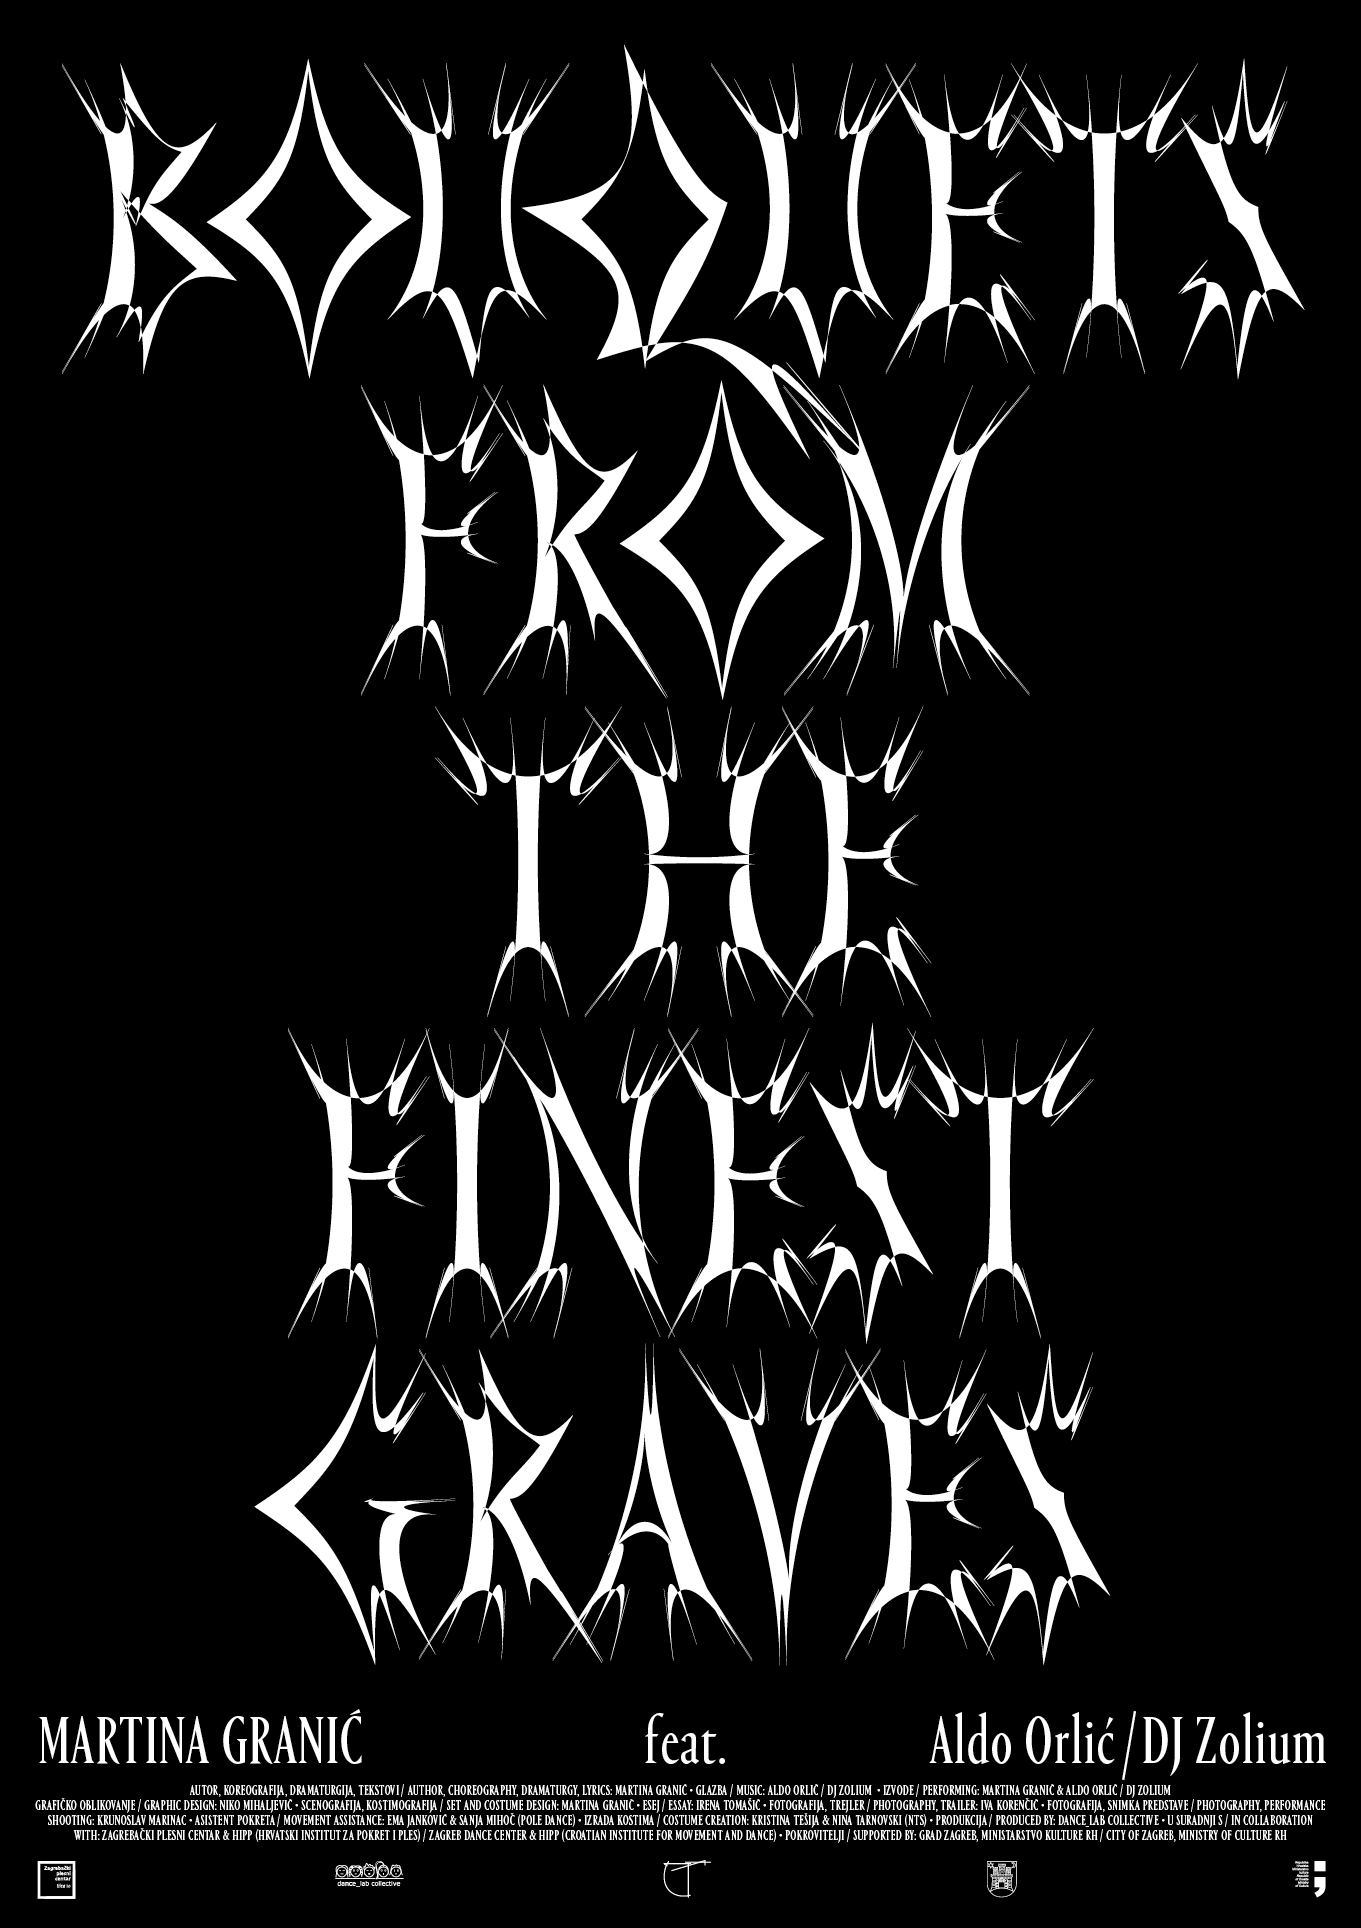 BOUQETES FROM THE FINEST GRAVES